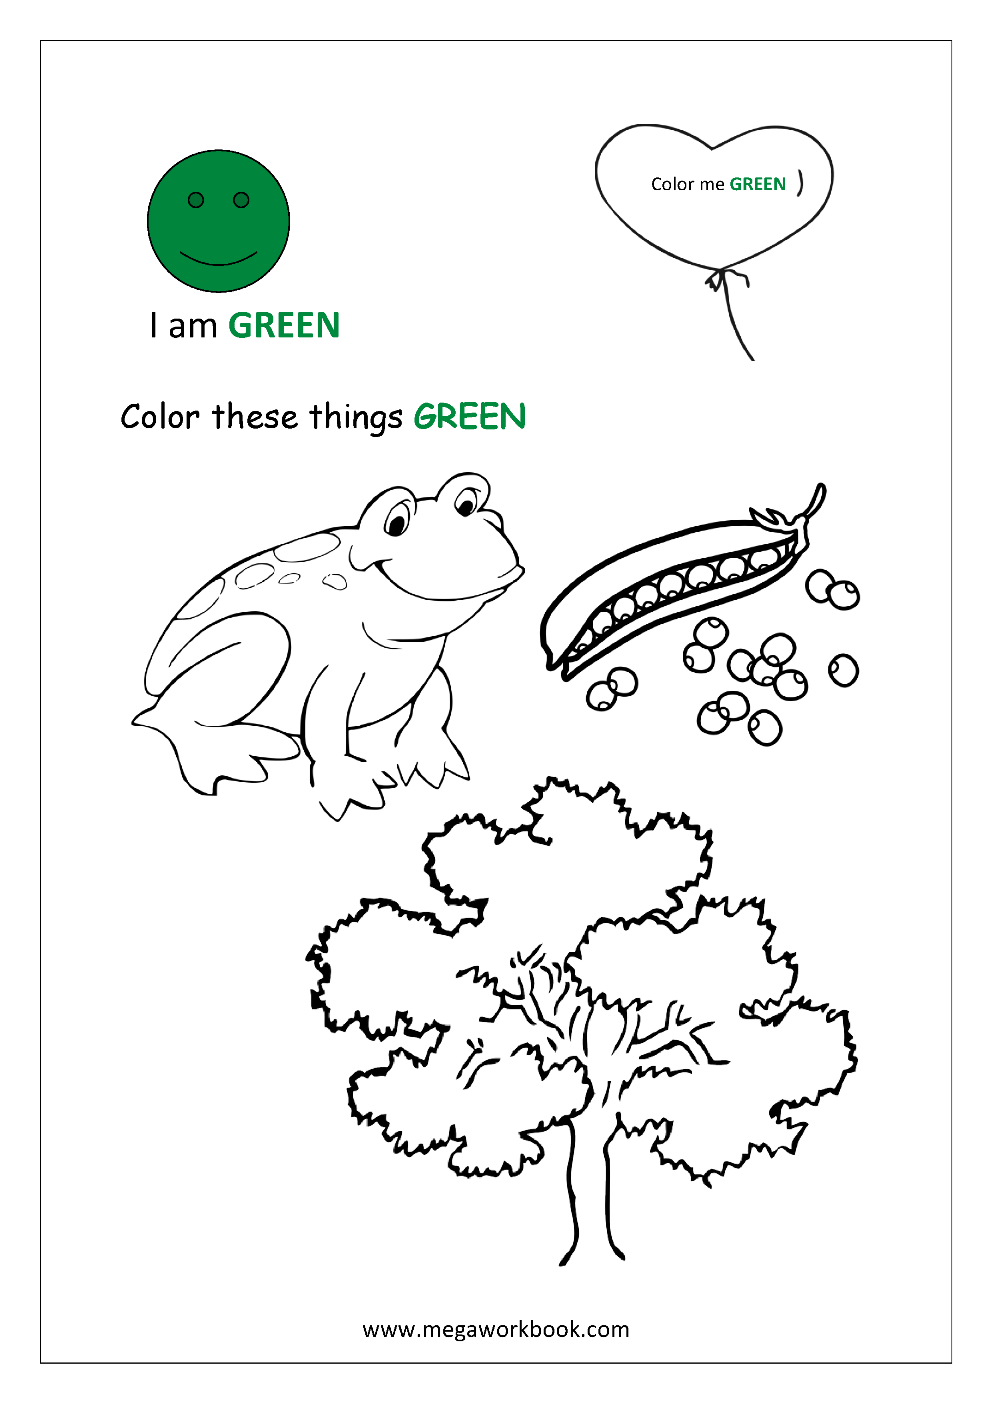 Learn Colors Red Coloring Pages Blue Coloring Pages Yellow Coloring Pages Green Coloring Pages Black White Brown Gray Purple Orange Pink Colors Coloring Pages Megaworkbook